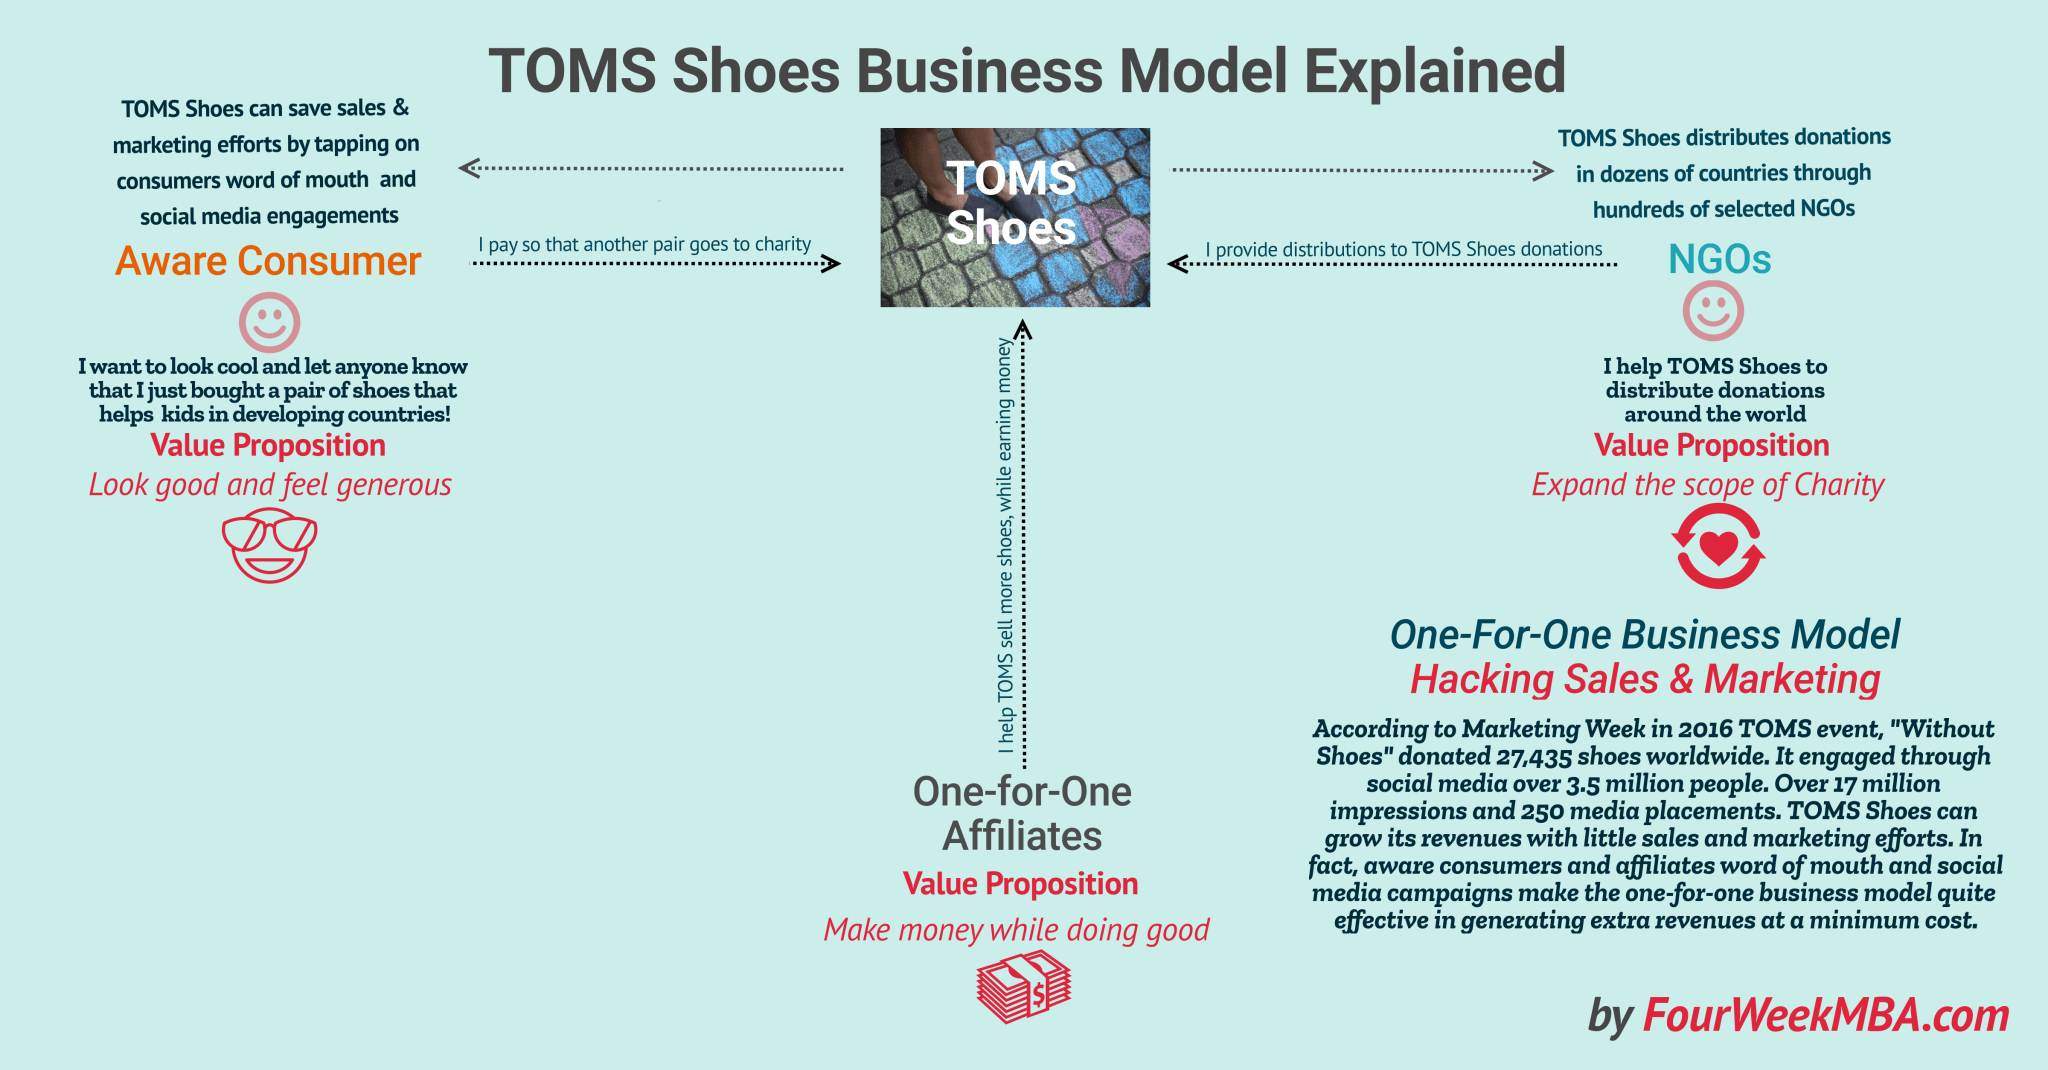 How Does TOMS Shoes Make Money? The One